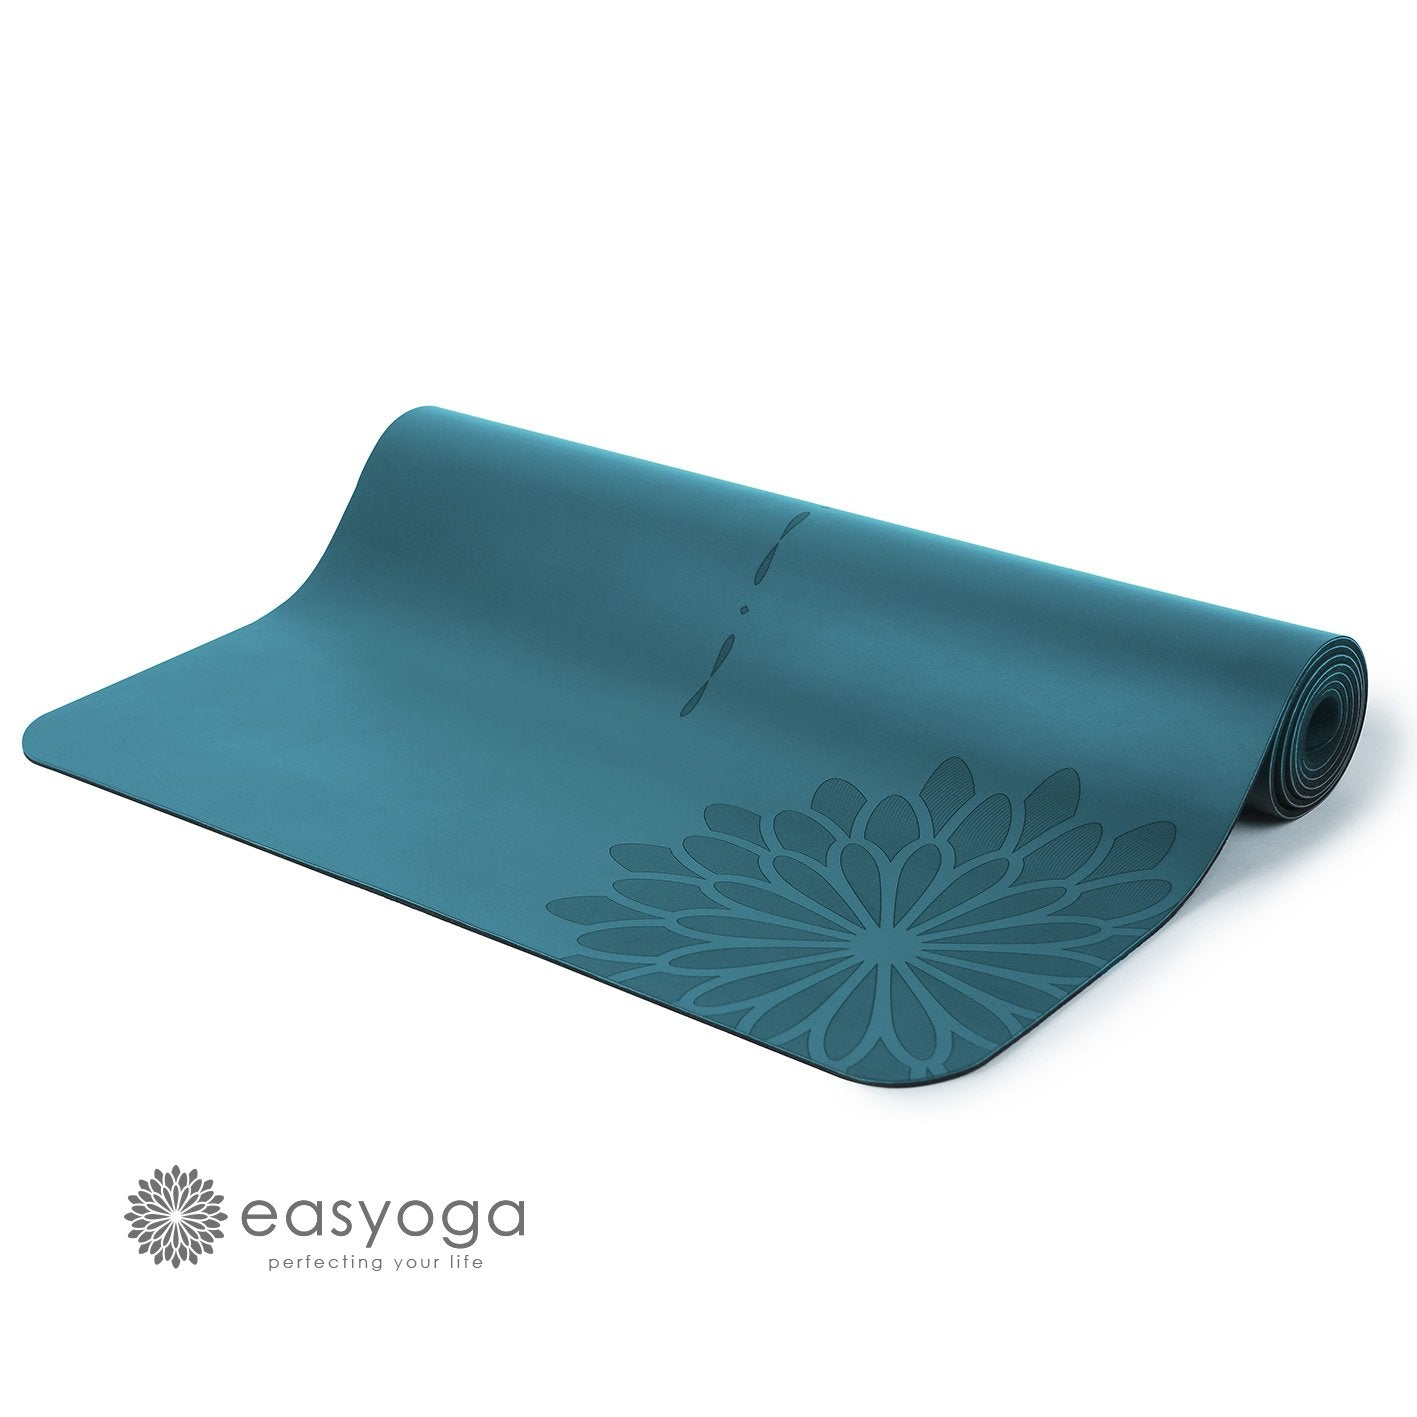 easyoga Breathin' Space Pro Mat - B2 Blue